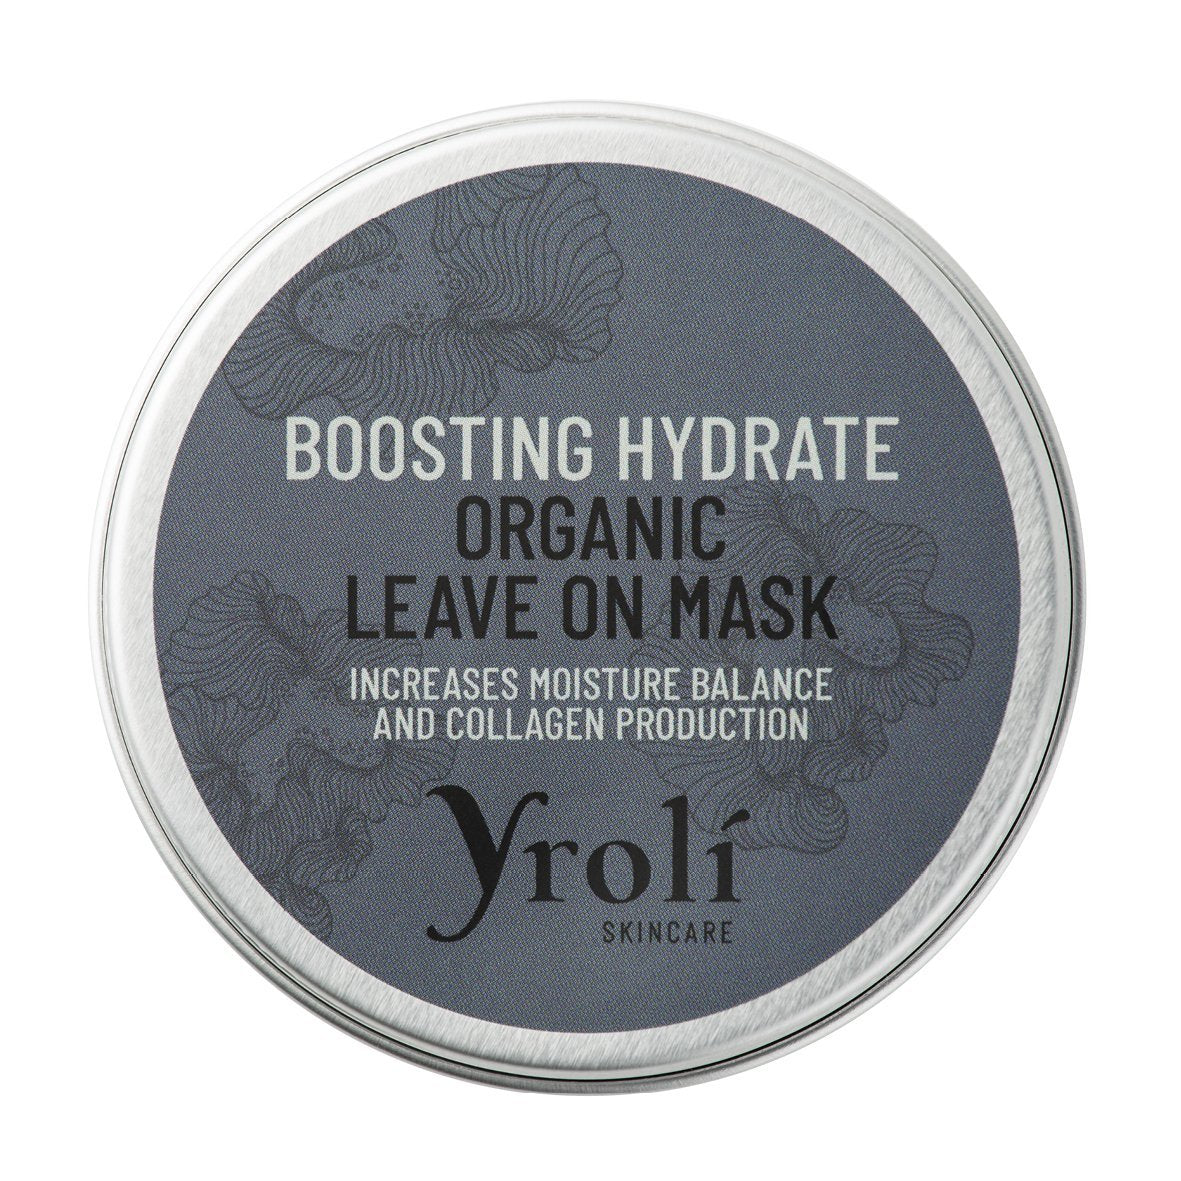 BOOSTING Organic Leave on mask